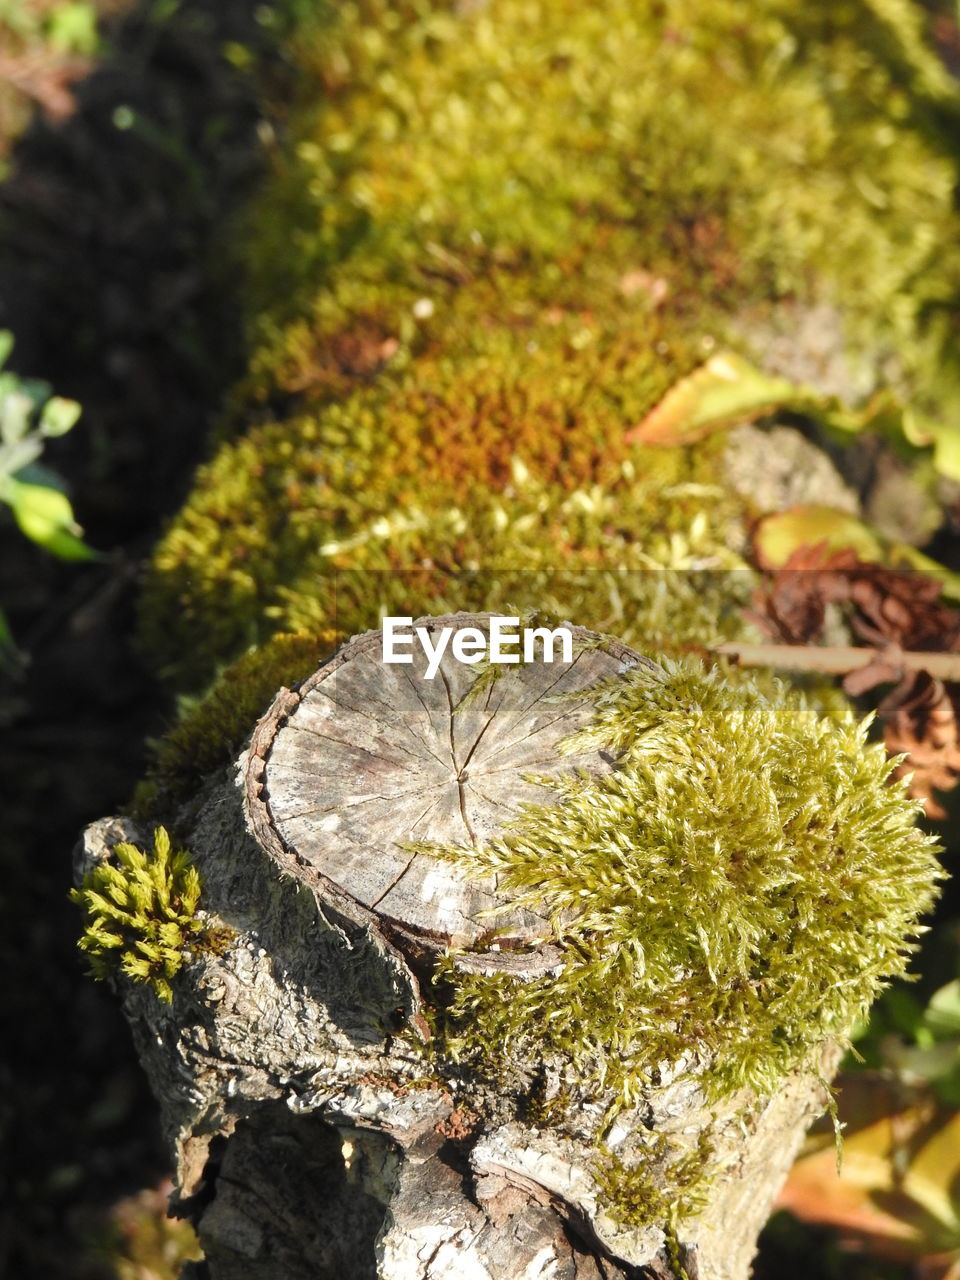 plant, nature, close-up, day, focus on foreground, no people, tree, sunlight, growth, leaf, plant part, moss, outdoors, beauty in nature, tree trunk, trunk, bark, green color, land, selective focus